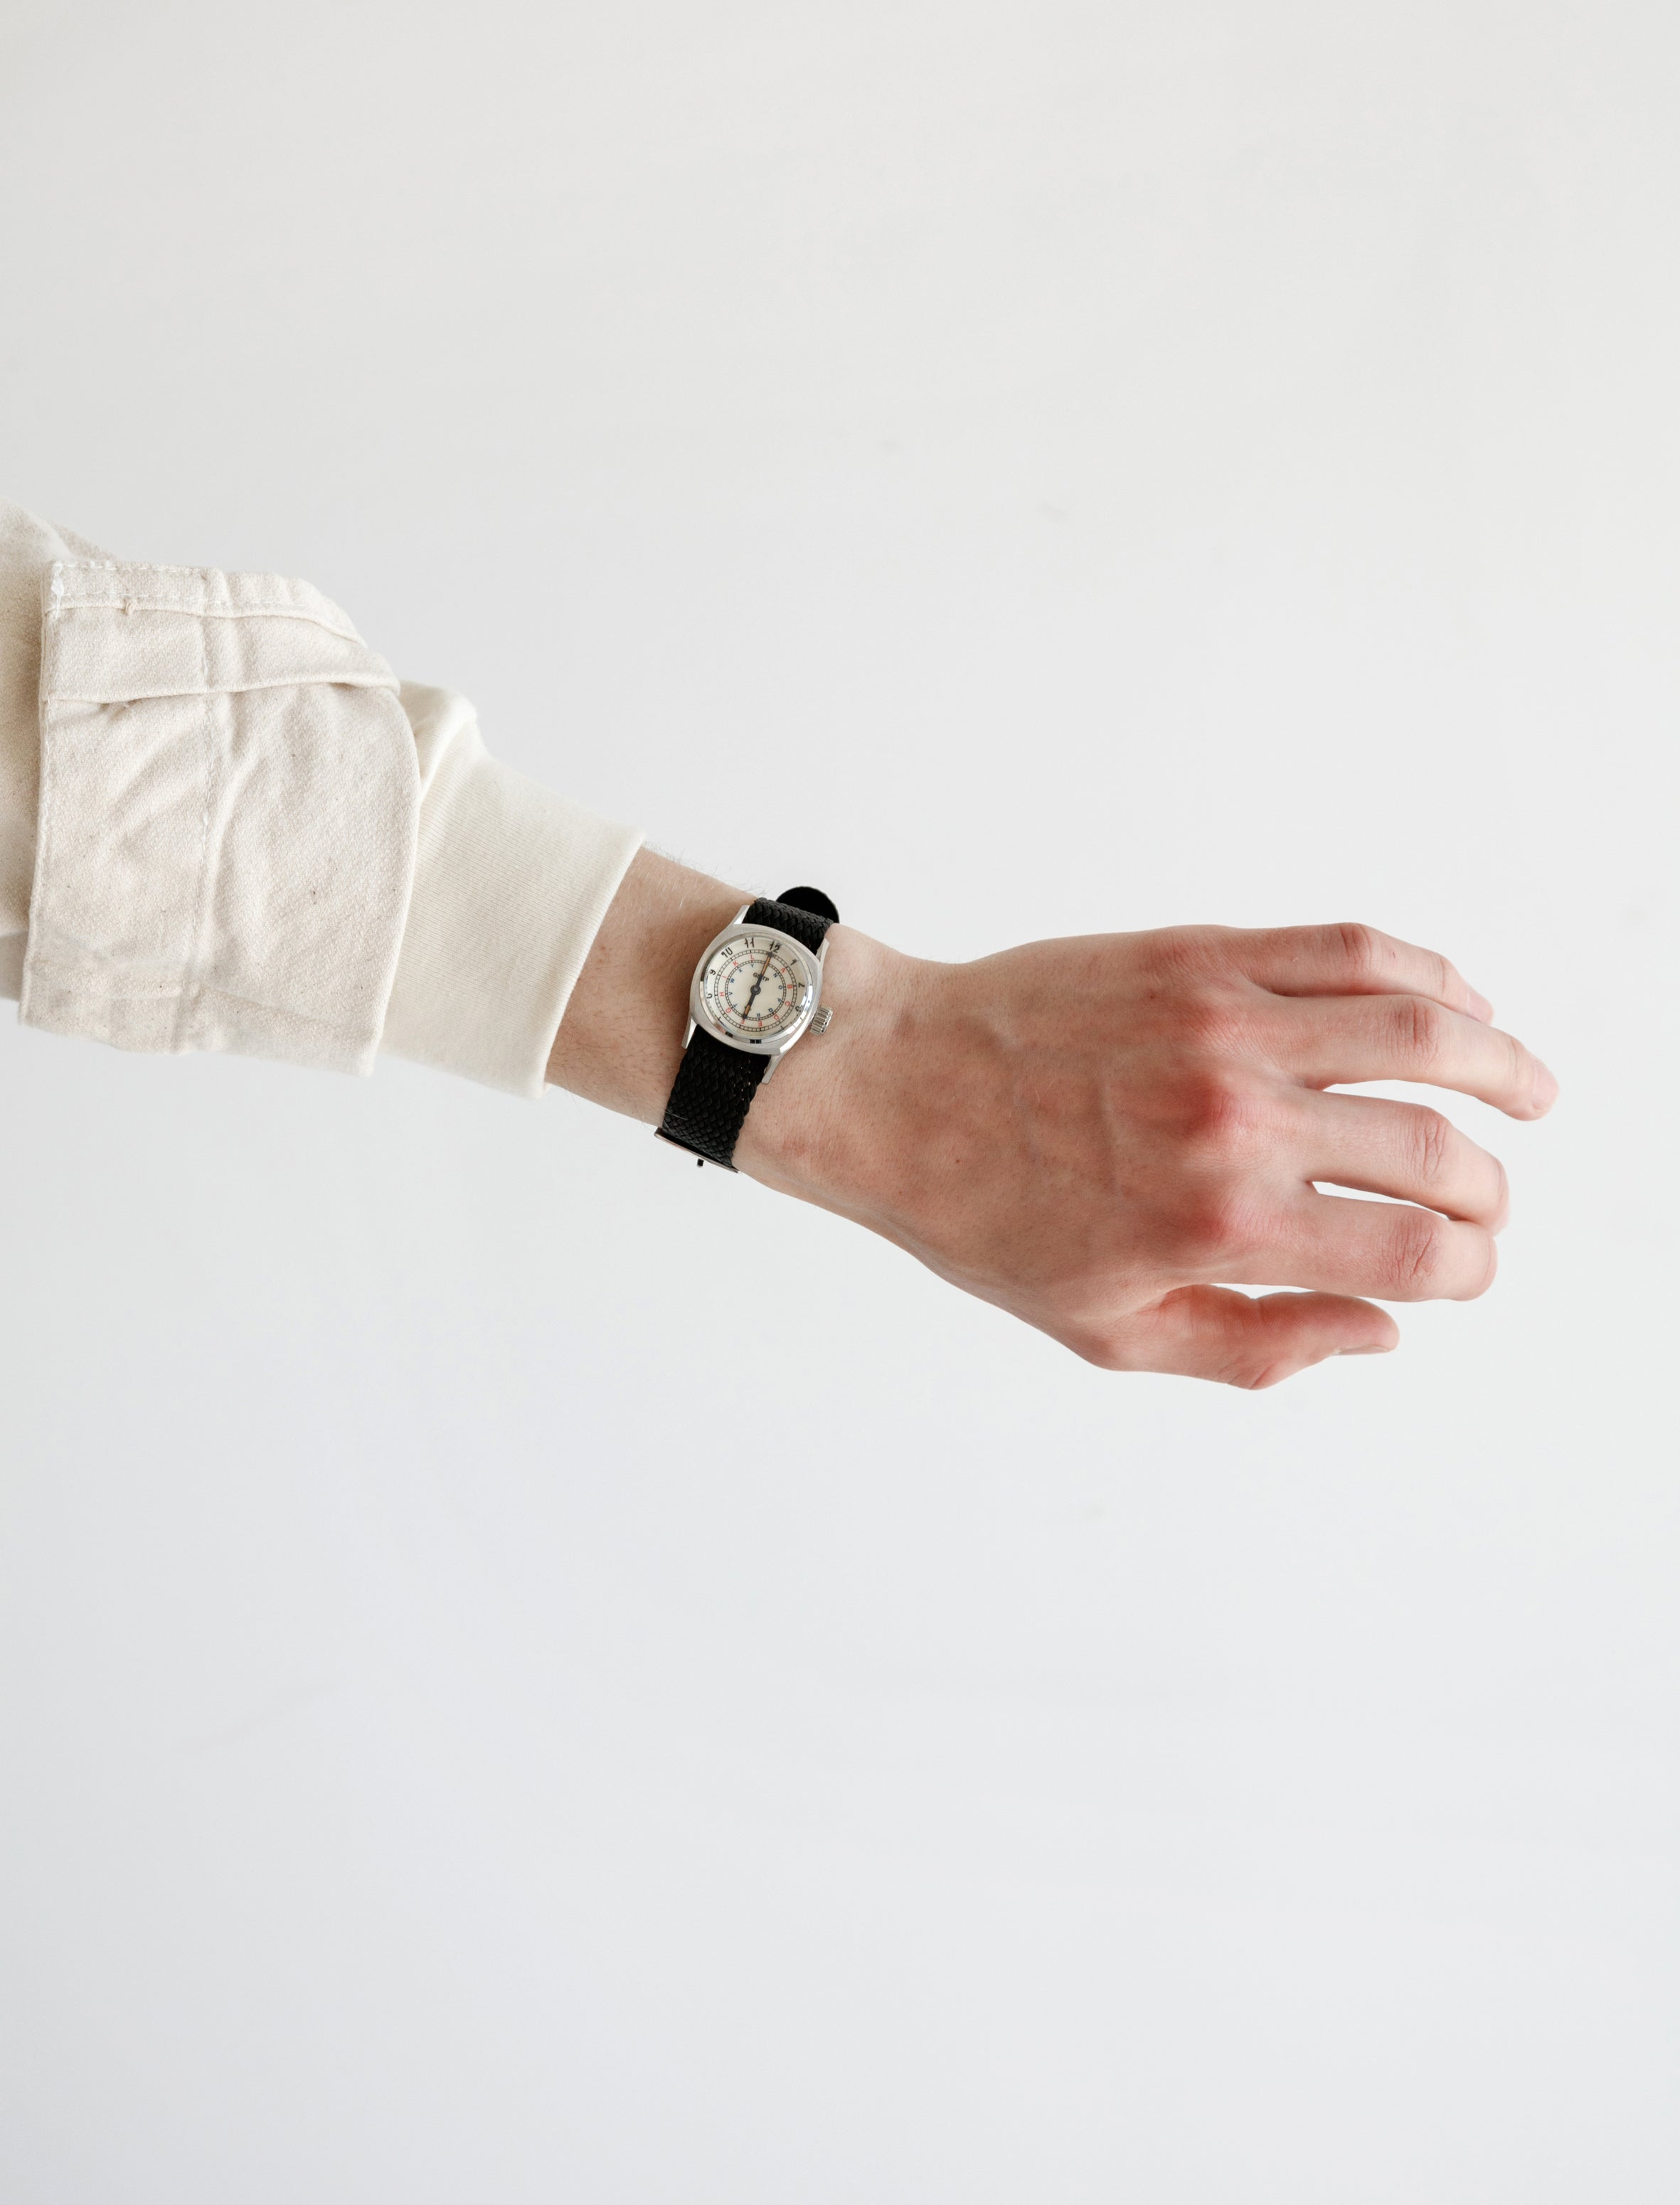 GS/TP Telegraph Wristwatch Cream